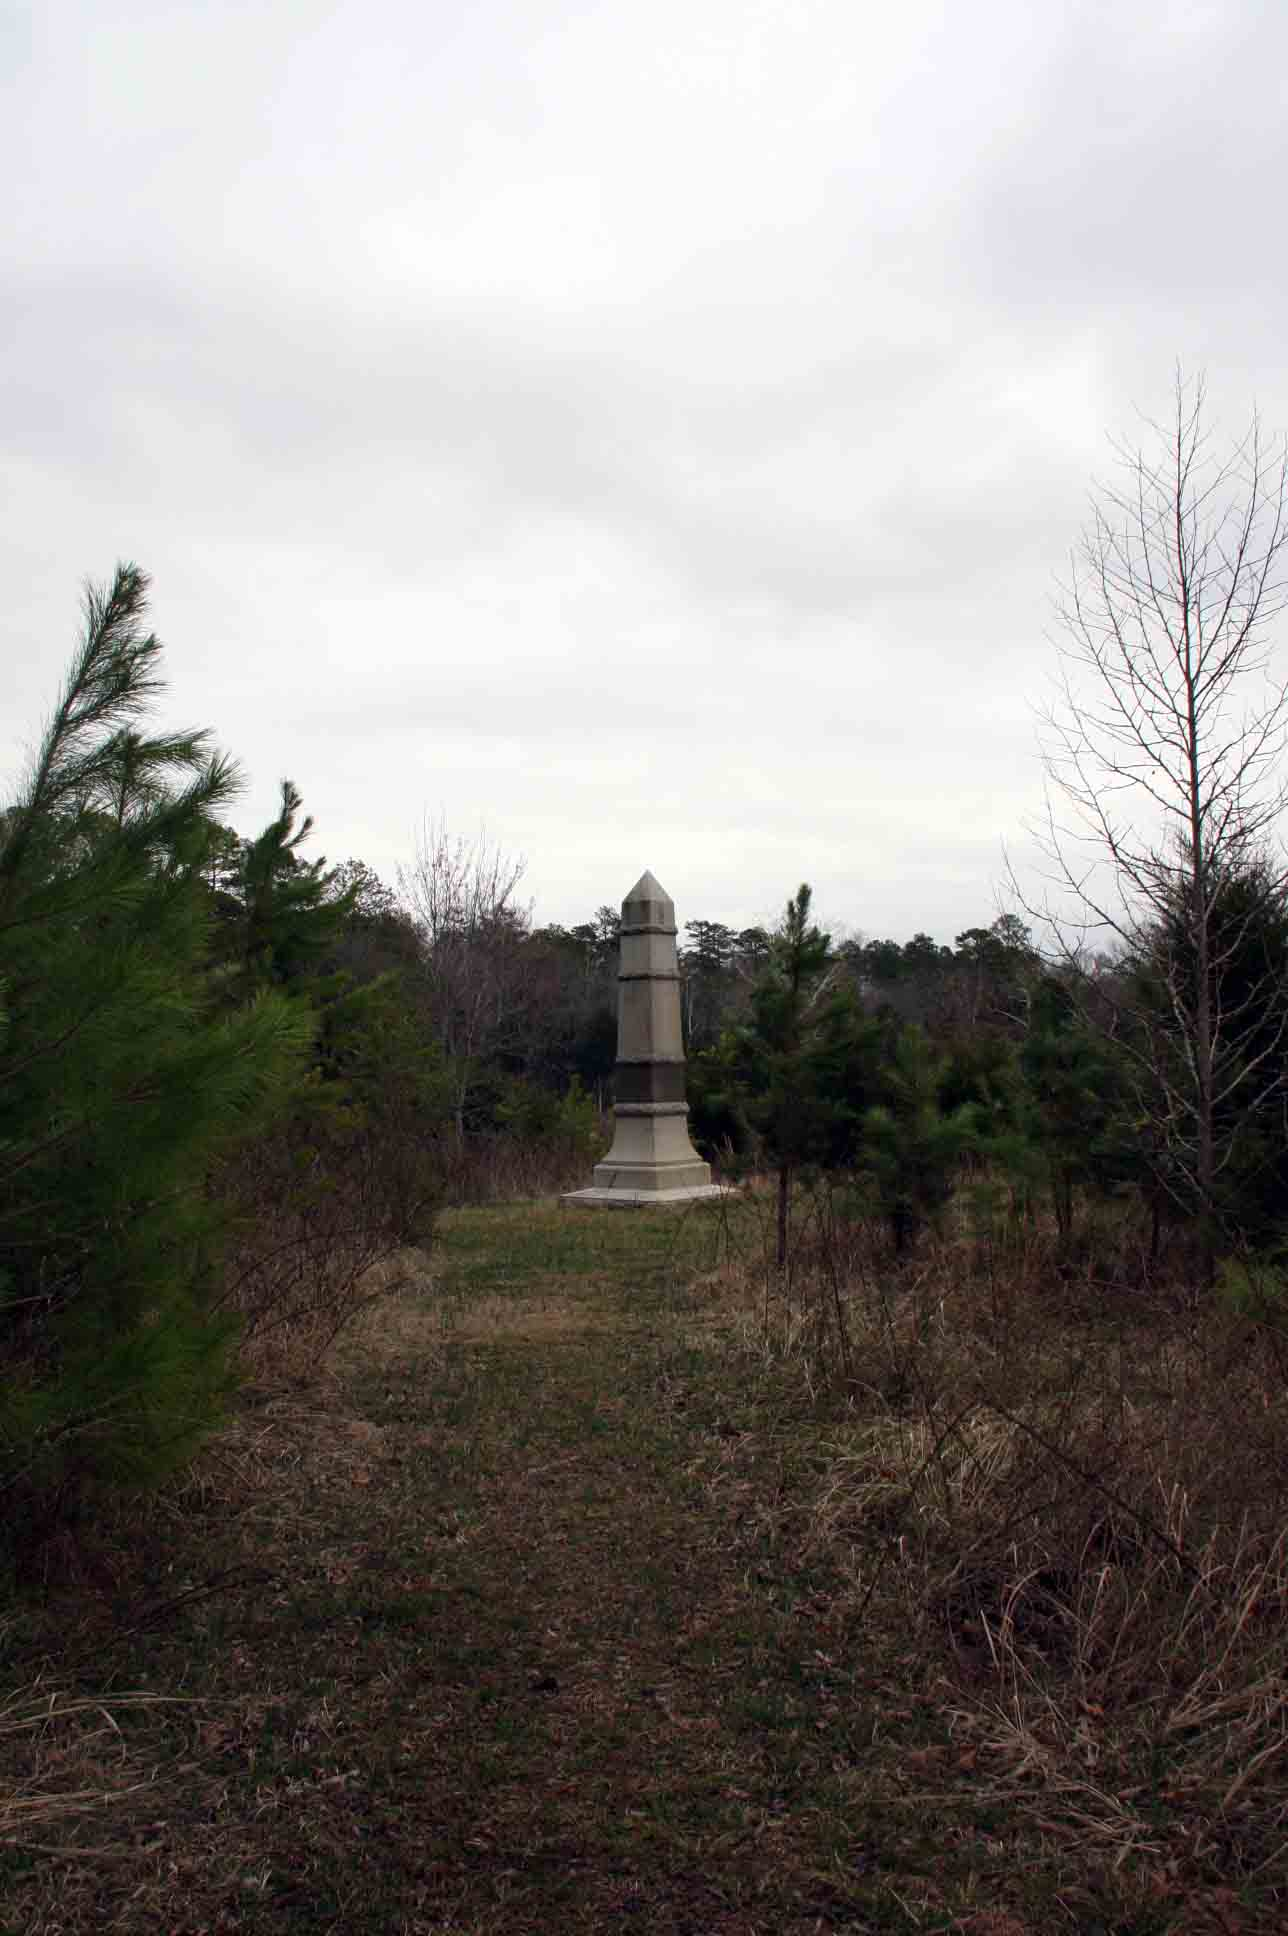 93rd Ohio Infantry Regiment Monument, click photo to enlarge.